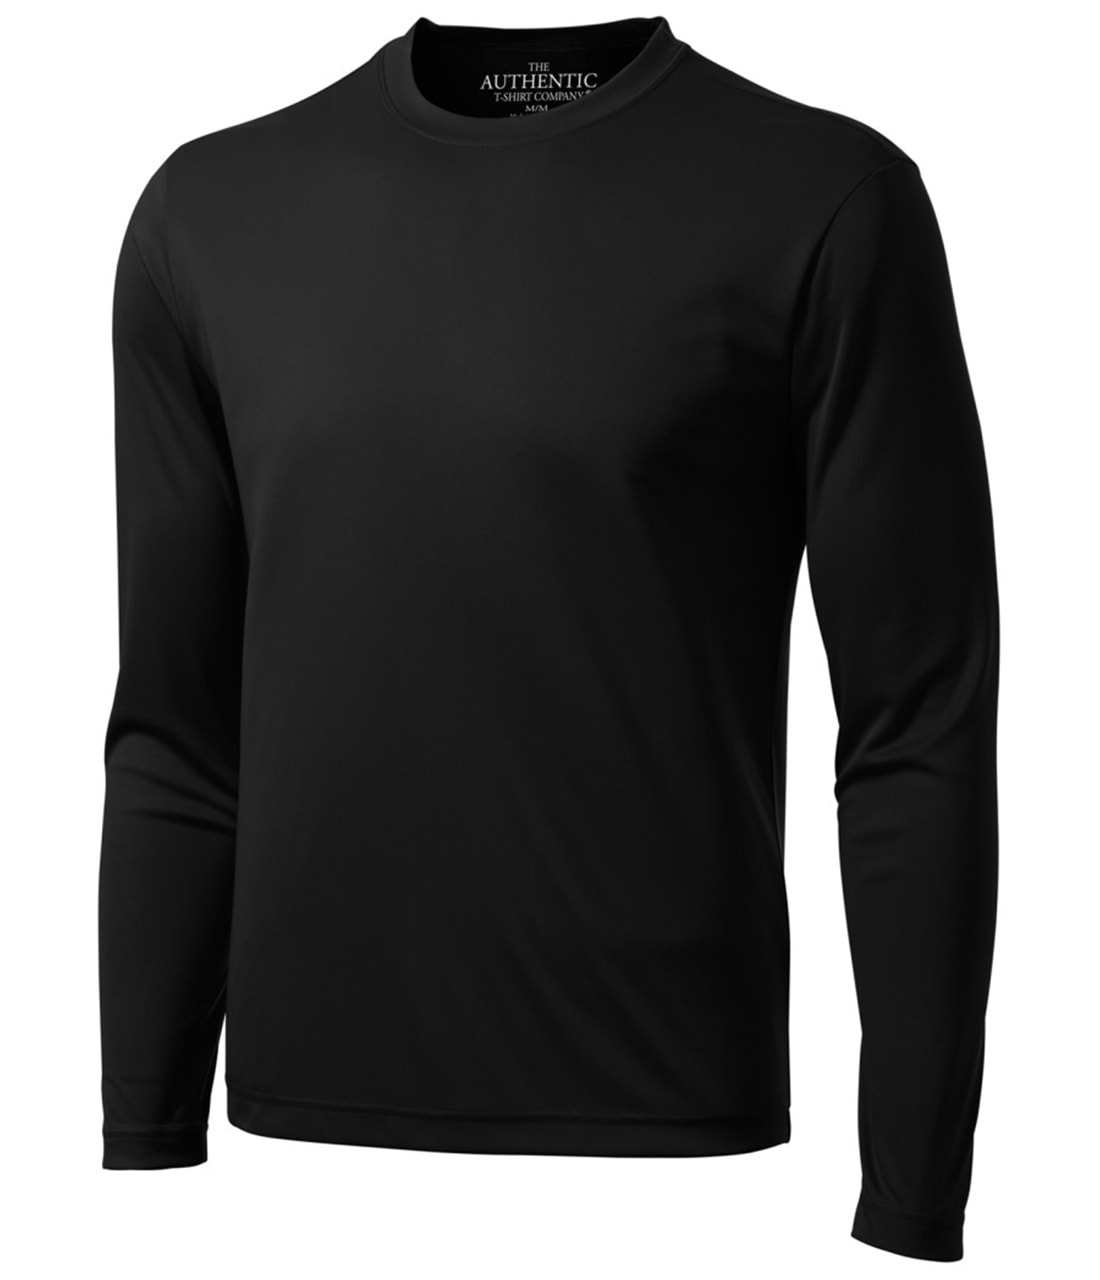 Picture of ATC Pro Team Long Sleeve T-Shirt ee7c5958b